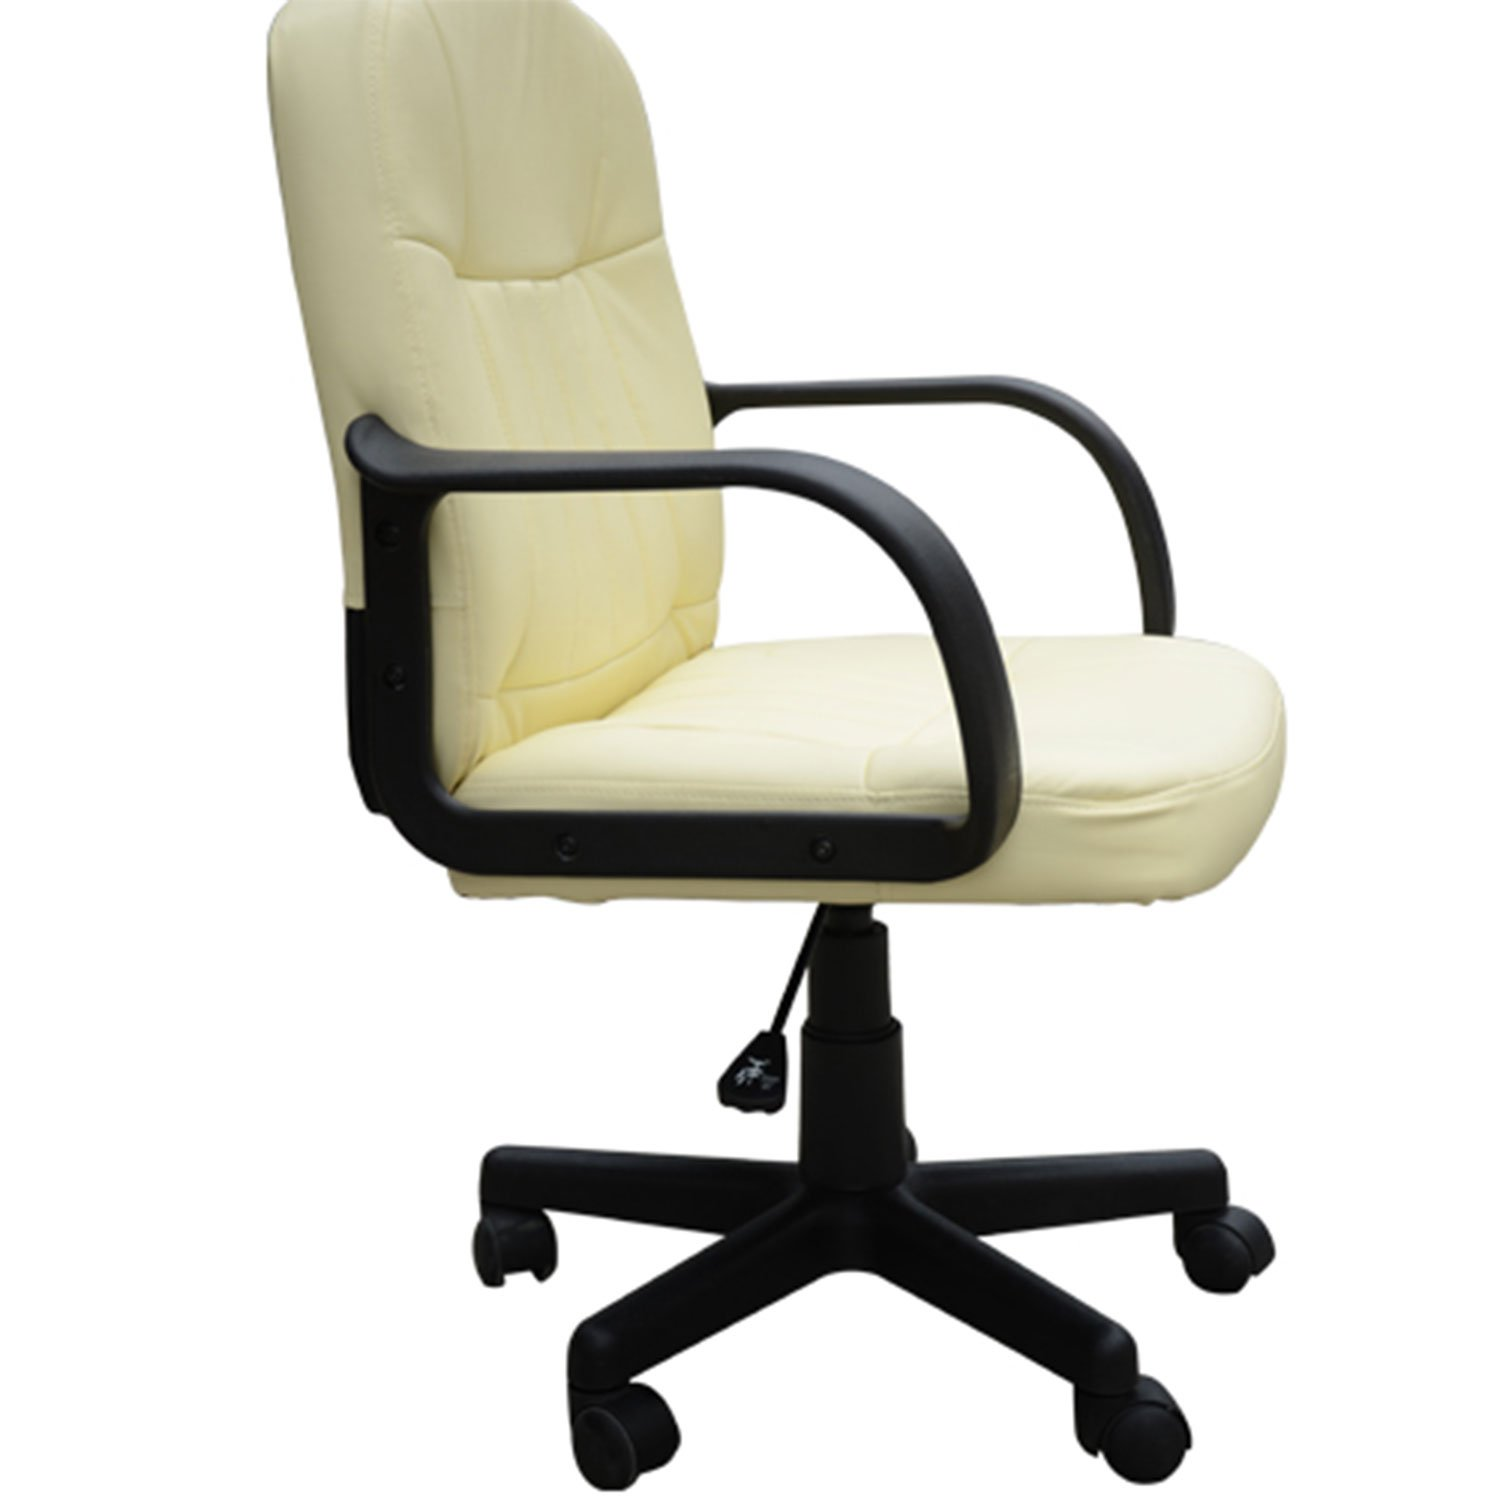 HOM Swivel Executive fice Chair PU Leather puter Desk